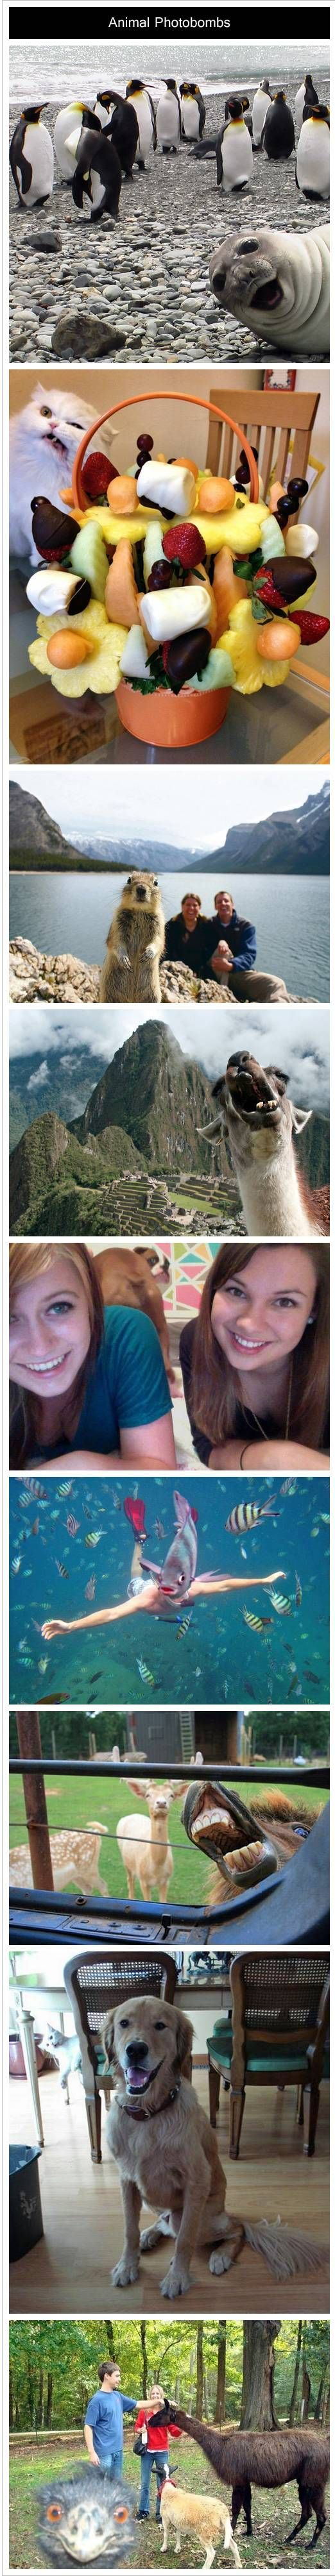 Animals do tHe e best photo bombs. These seriously make me laugh EVERY time! Lol